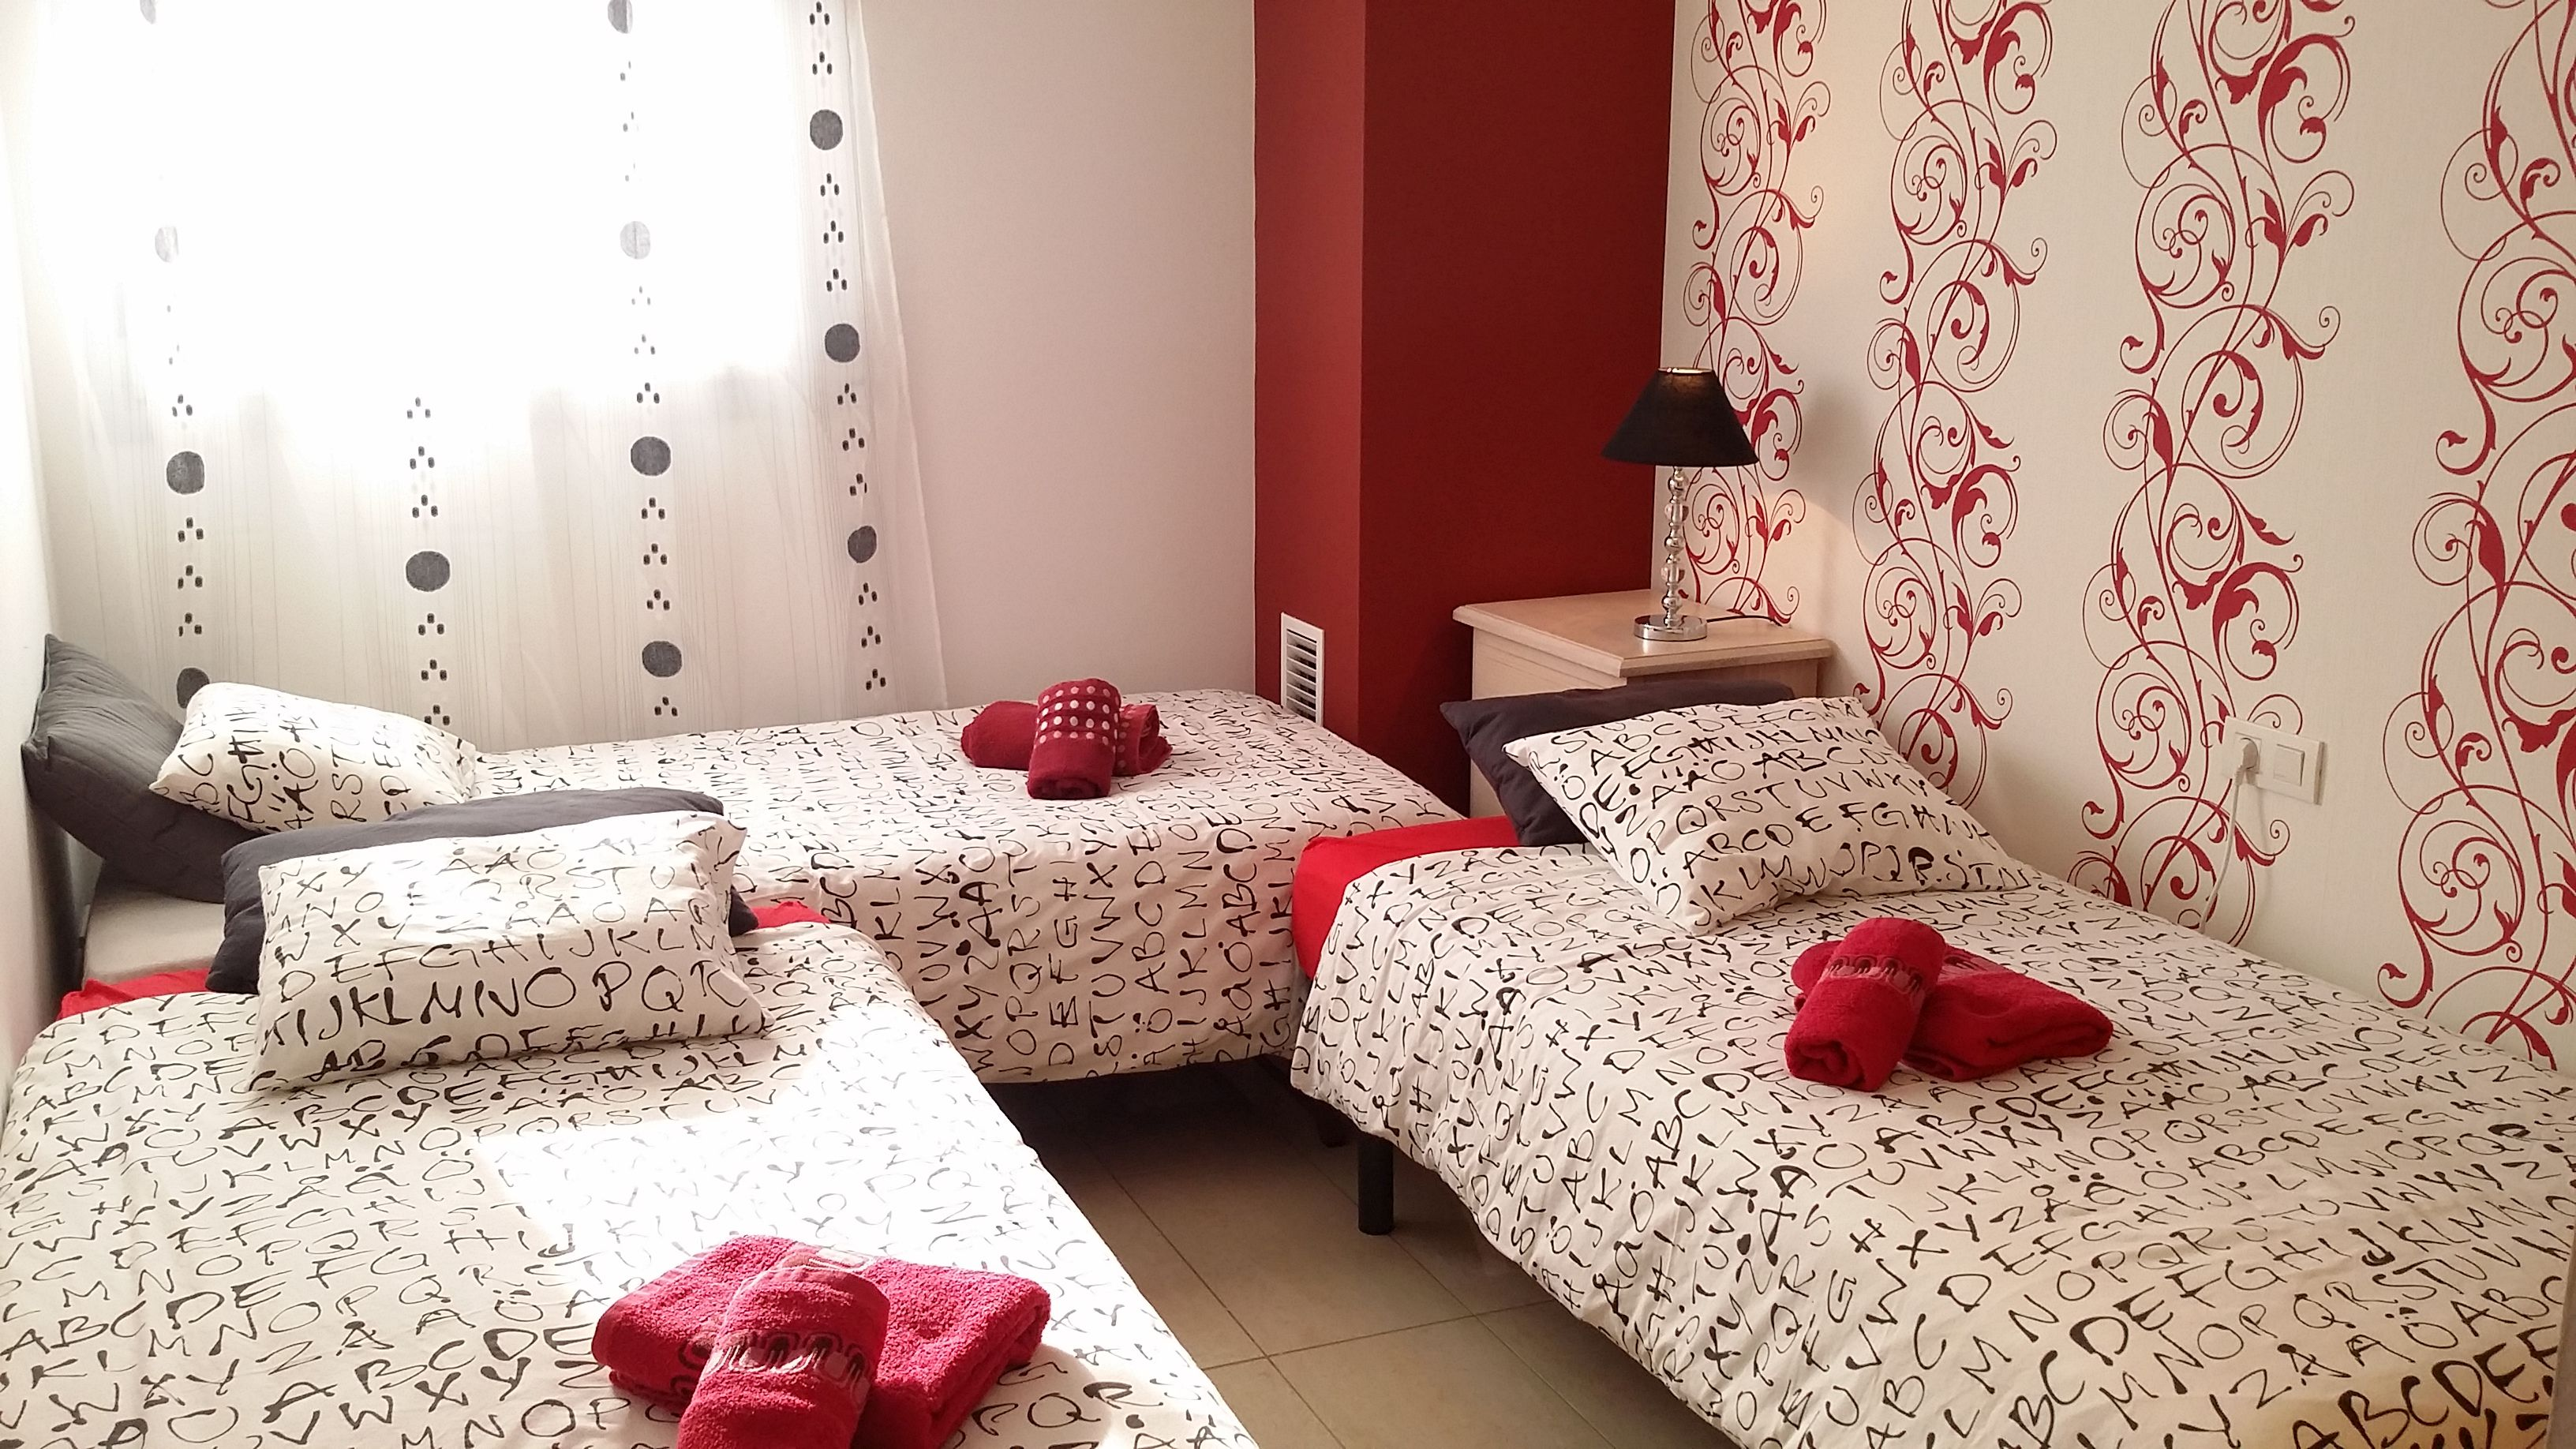 """bedroom III"": 3 single beds, beside table, wardrobe"